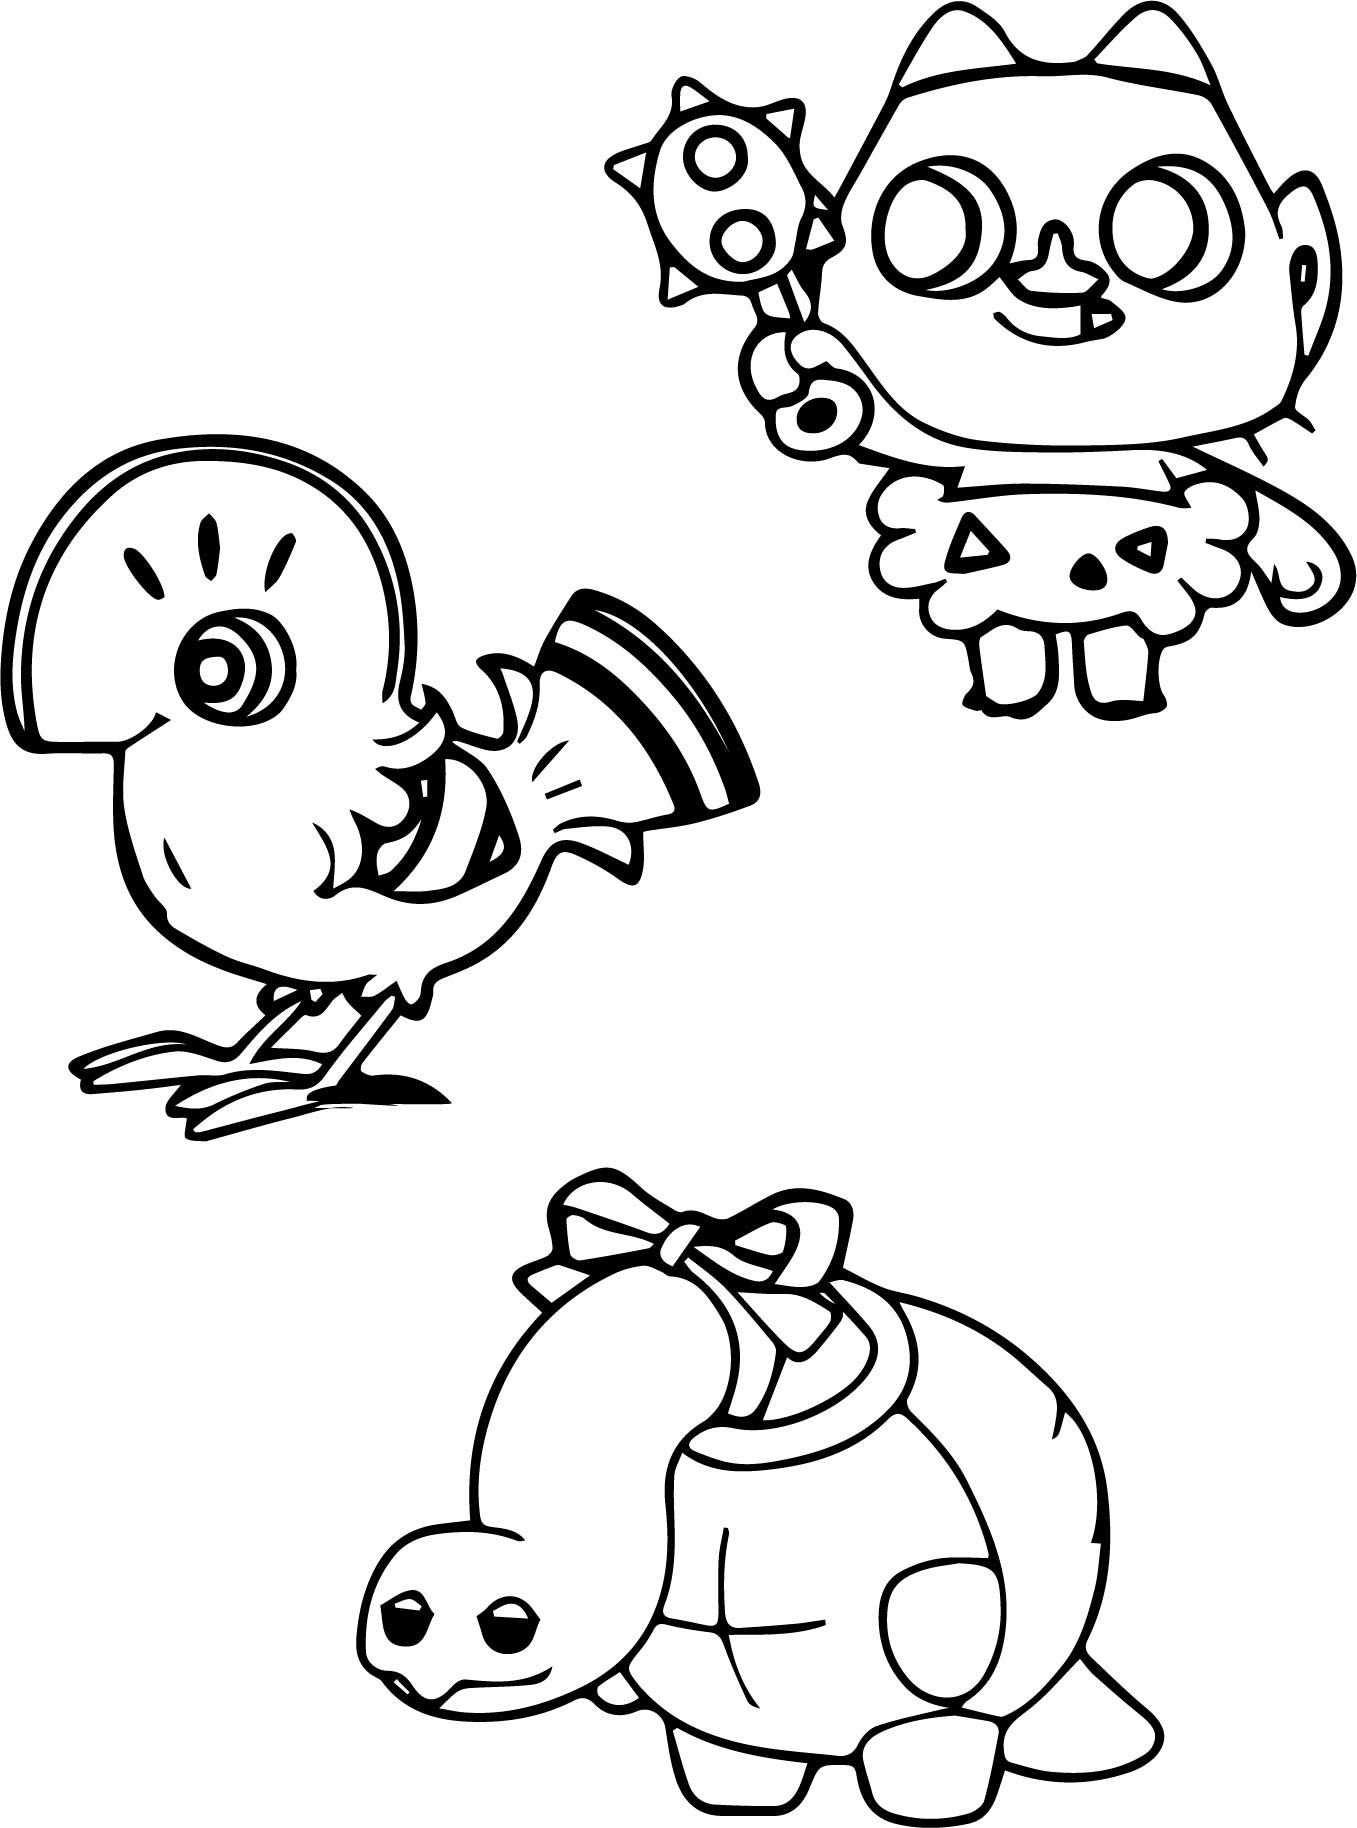 Tortoise Turtle And Other Animal Coloring Page Wecoloringpage